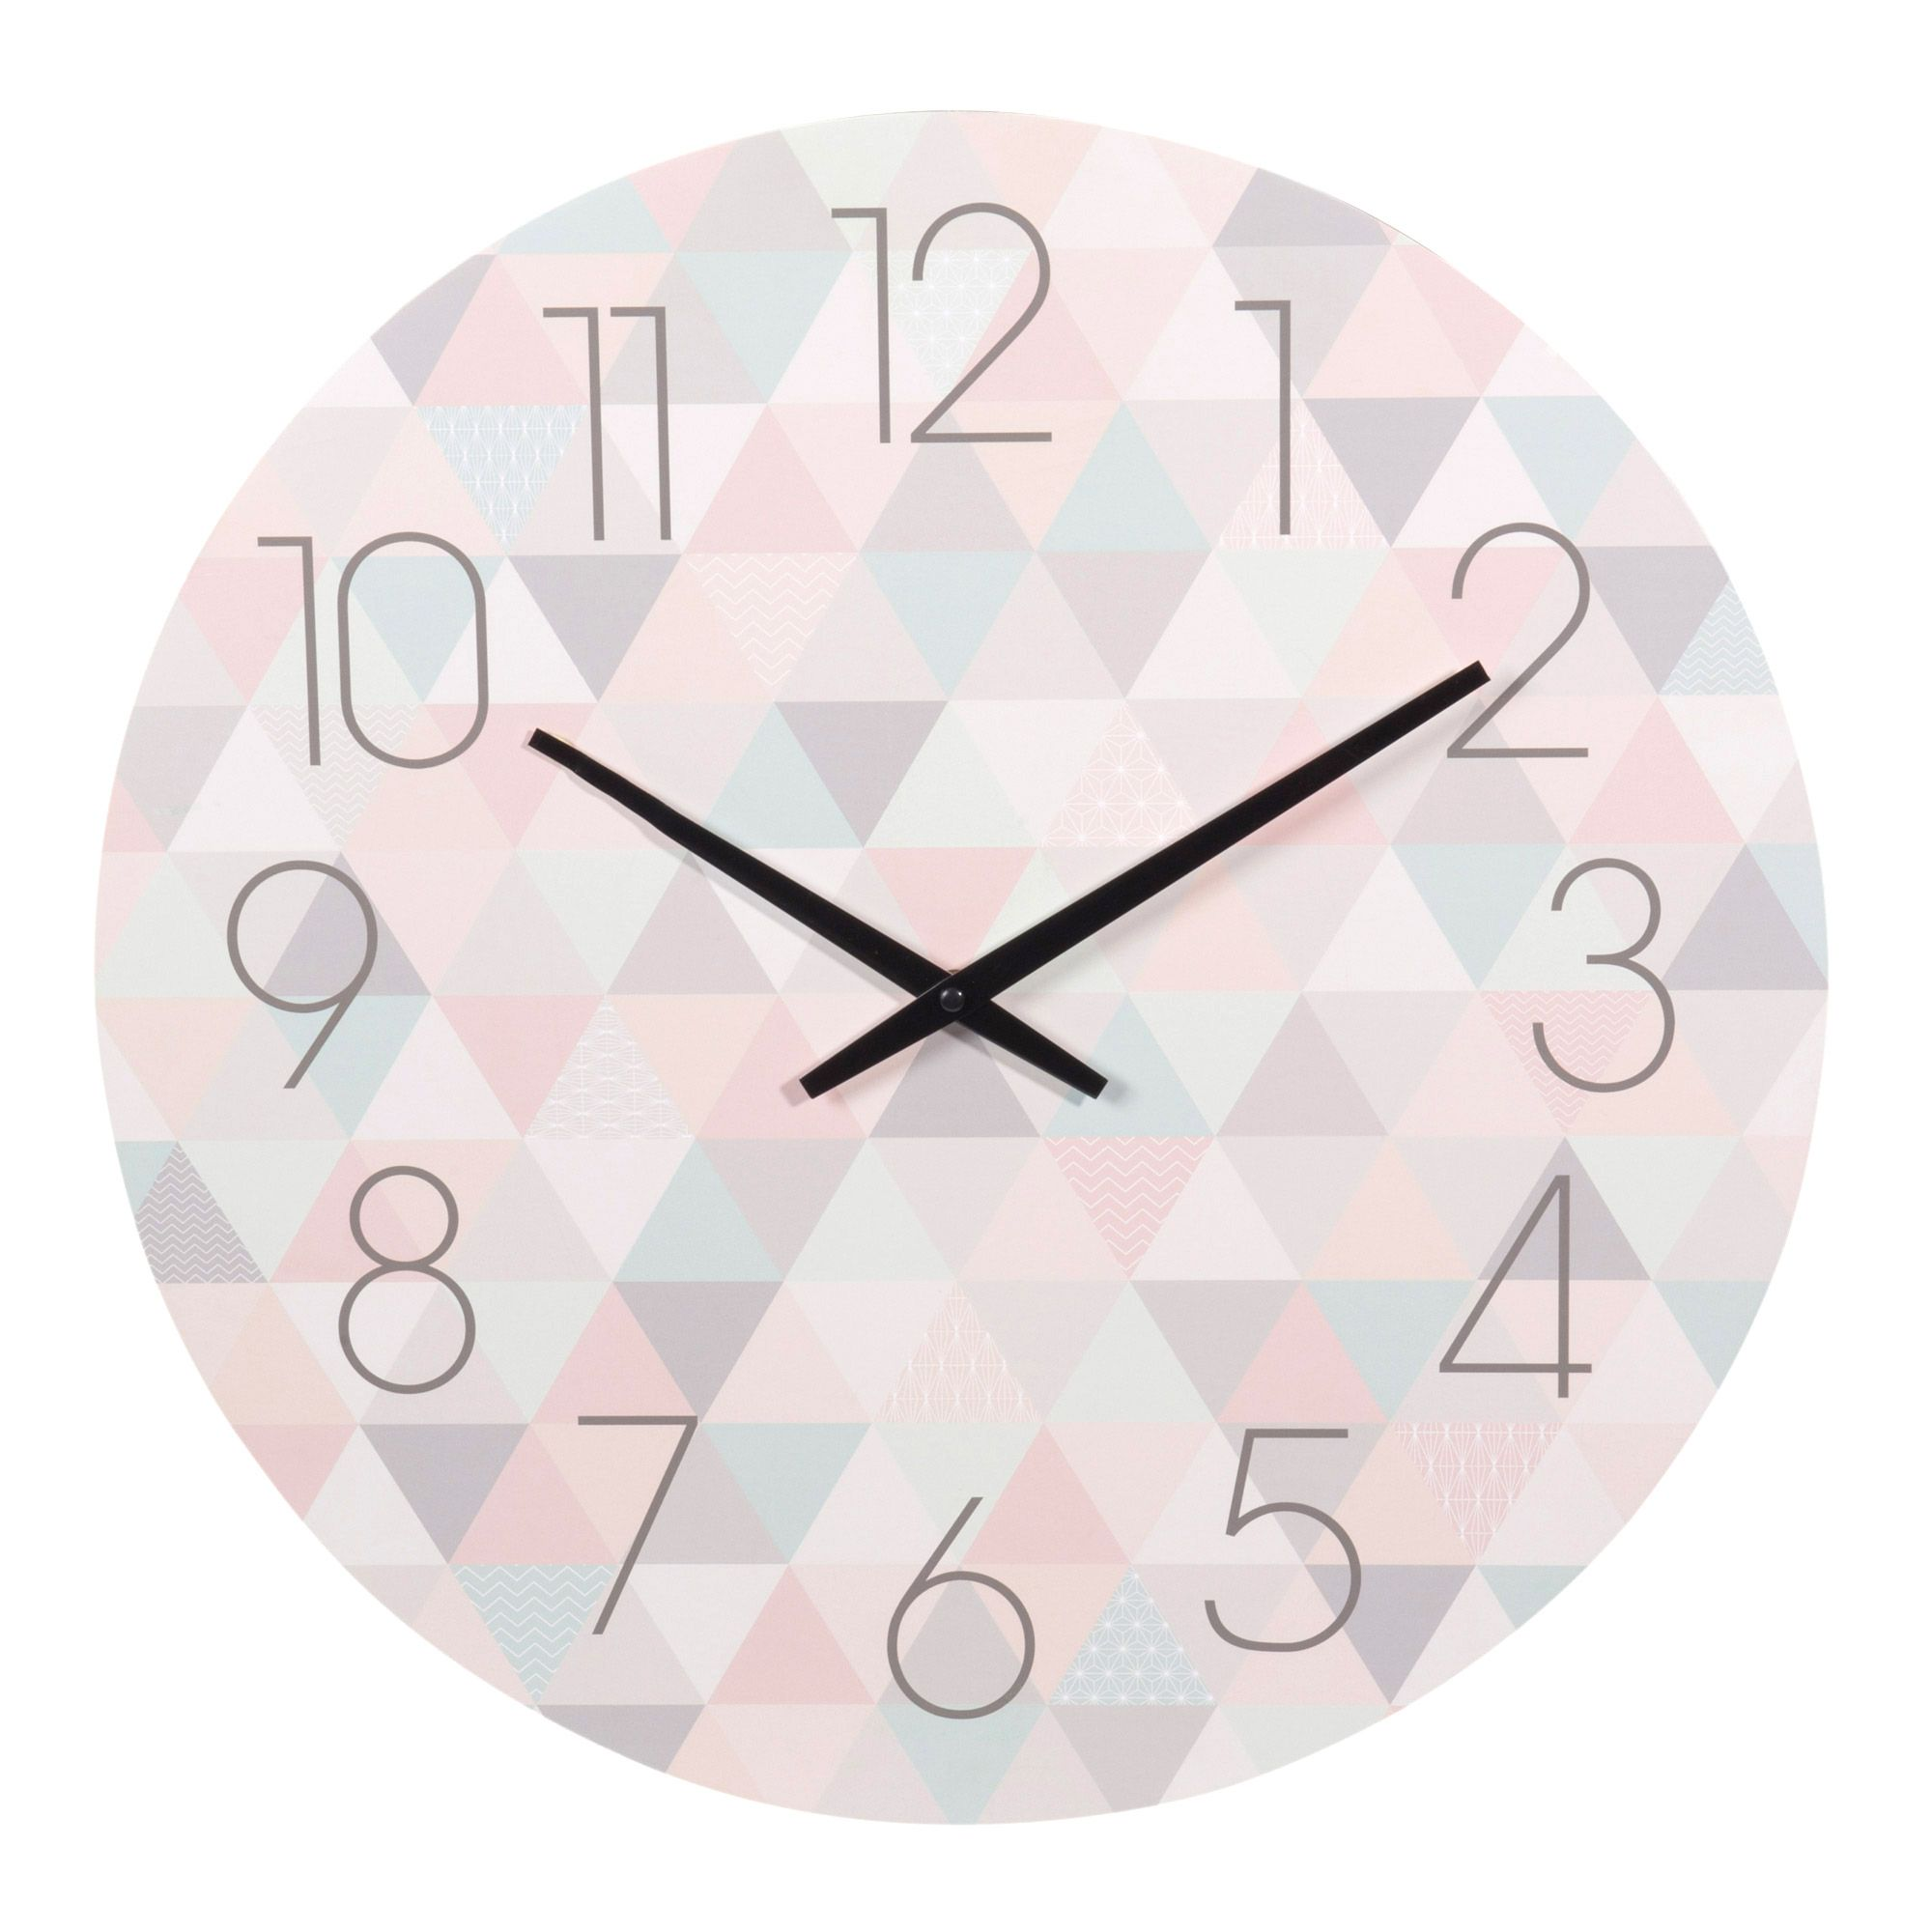 horloge en bois pastel d 50 cm zo maisons du monde triangle diamond hexagon triangle. Black Bedroom Furniture Sets. Home Design Ideas